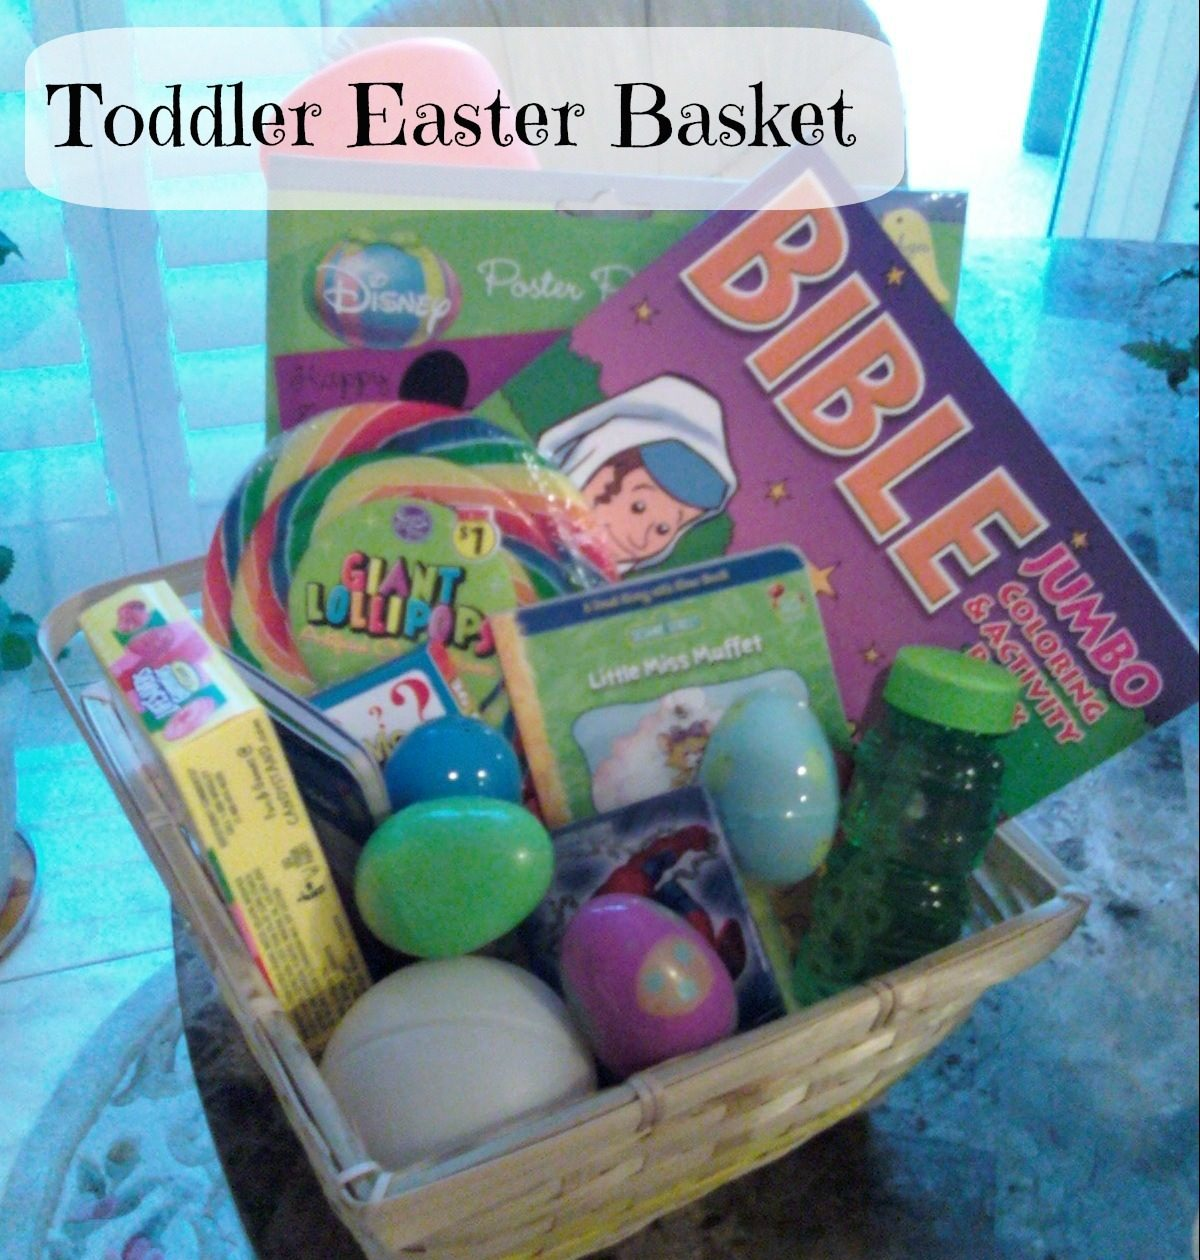 Homemade Easter Basket Ideas from Momslifeboat.com @ginahorne #Easter